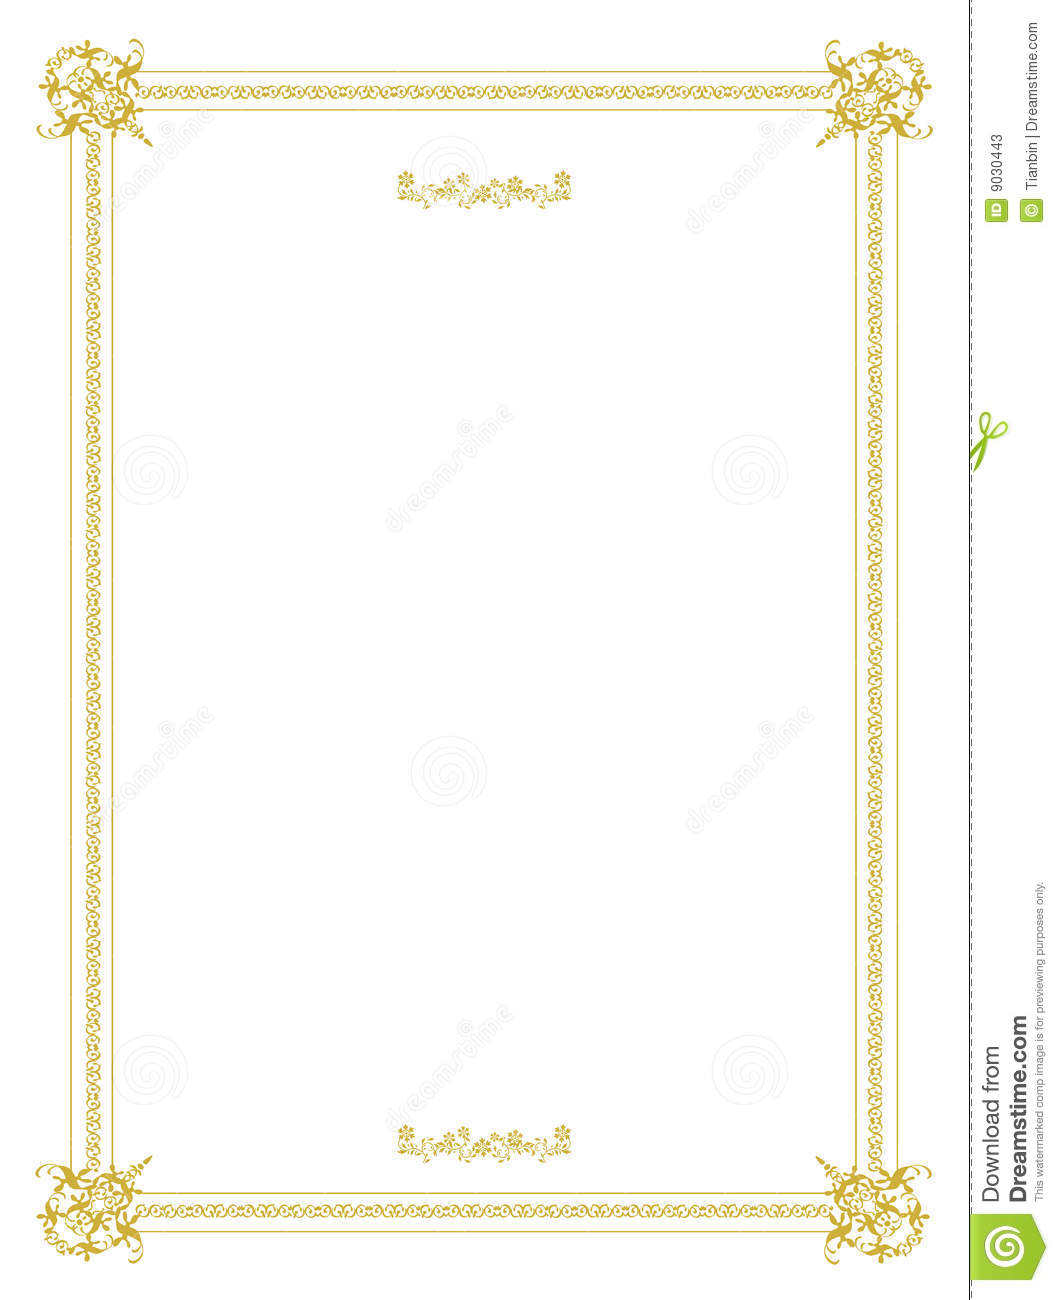 Invitation Frame Design stock vector. Illustration of clean - 9030443